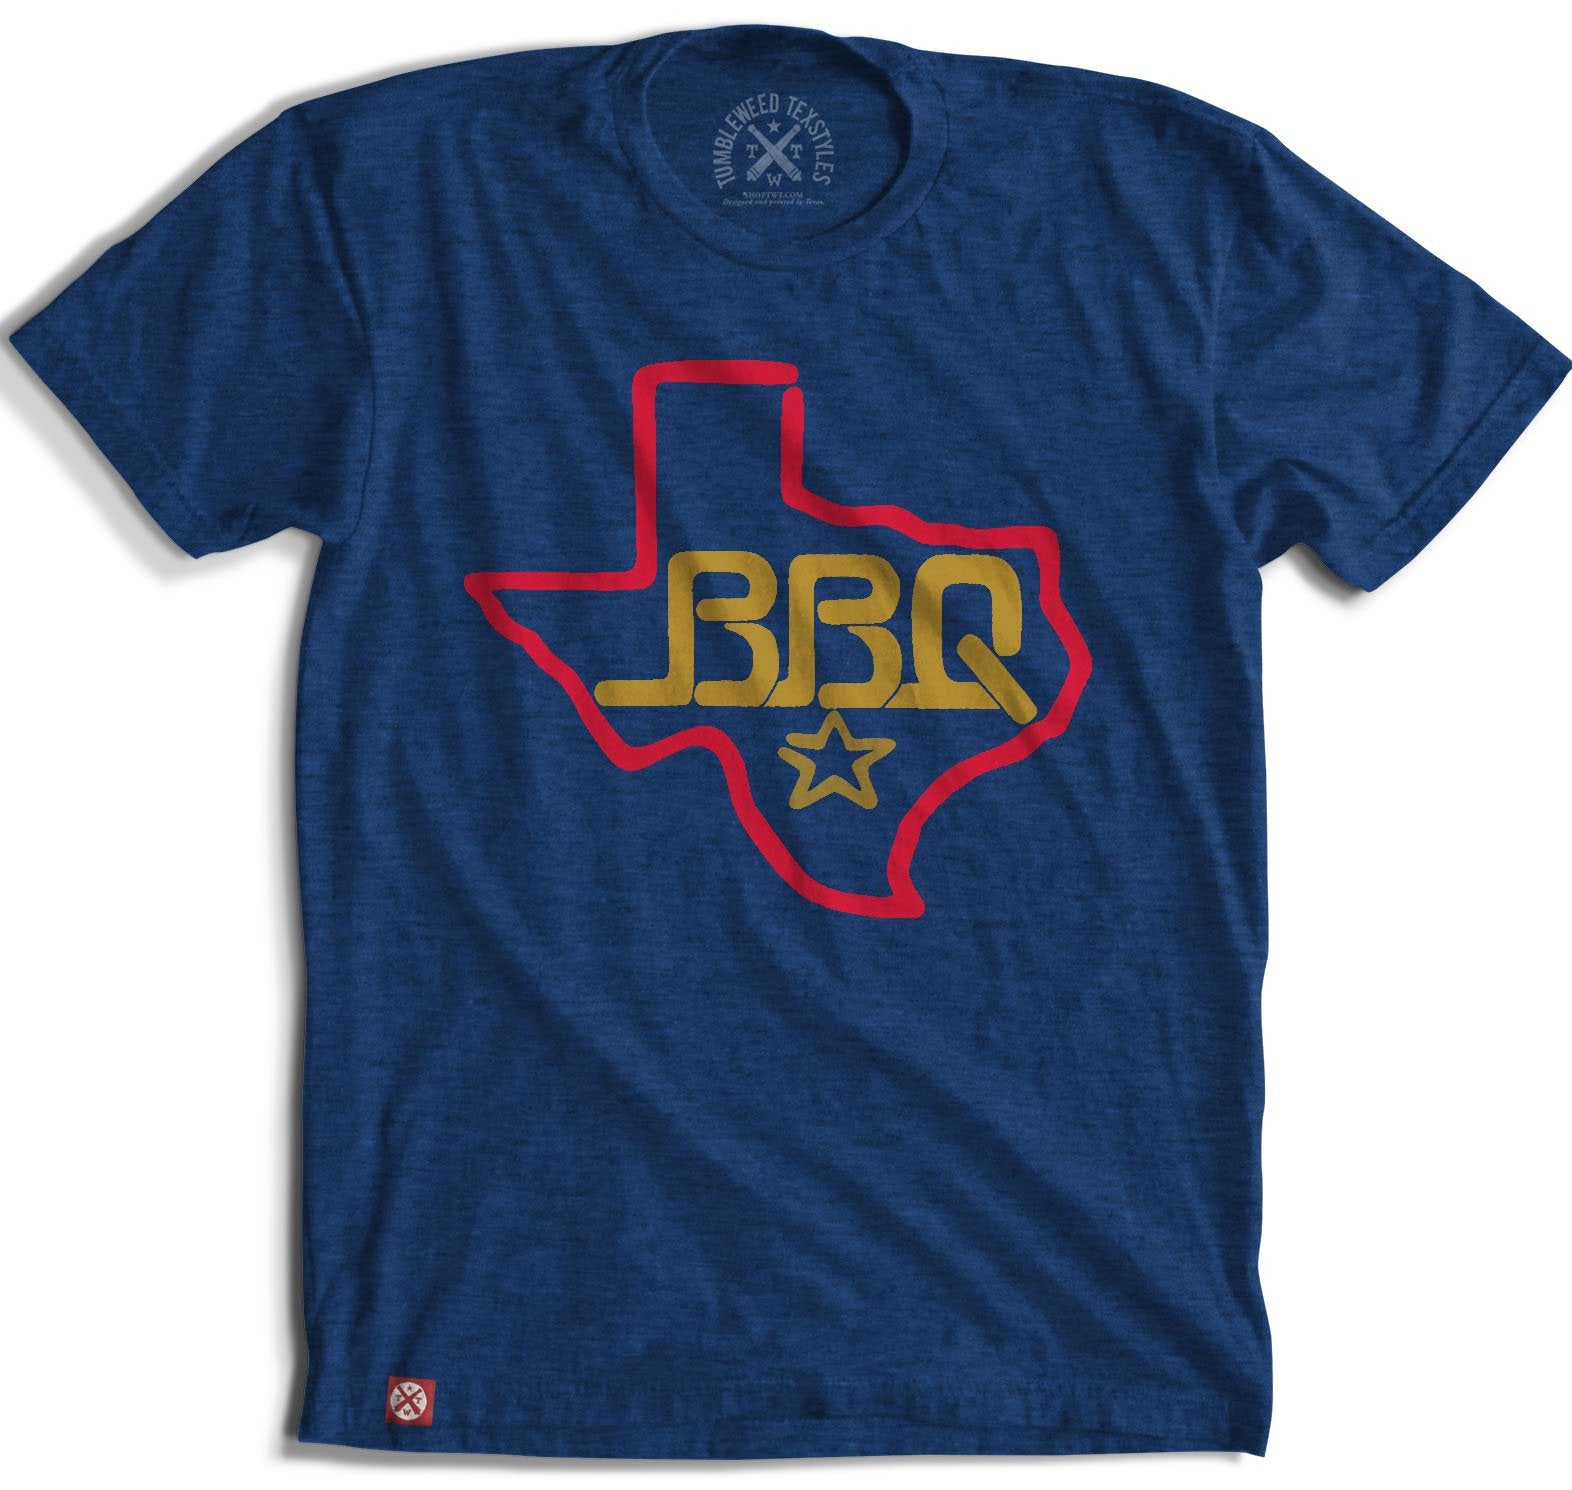 Texas BBQ T-Shirt MEN - Clothing - T-Shirts & Tanks TUMBLEWEED TEXSTYLES Teskeys